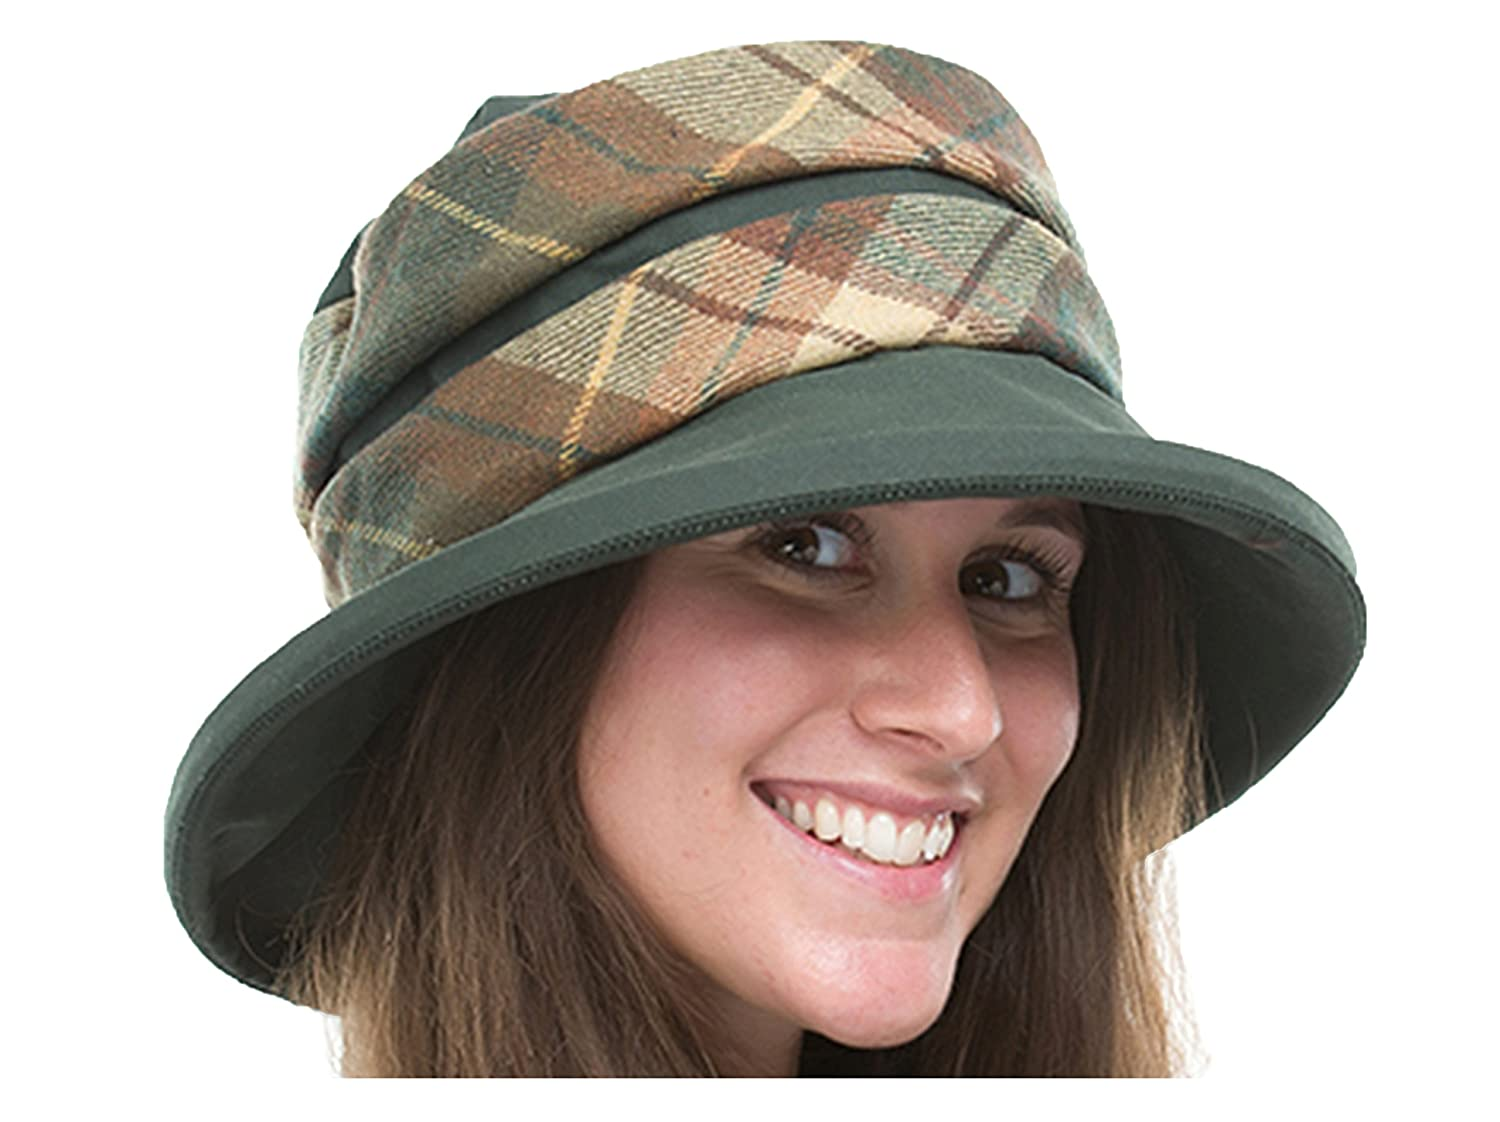 f64c57573fc Jane Anne Designs Ladies Maria Green Waxed Cotton Waterproof Winter Wax  Cloche Hat with Tweed Band  Amazon.co.uk  Clothing